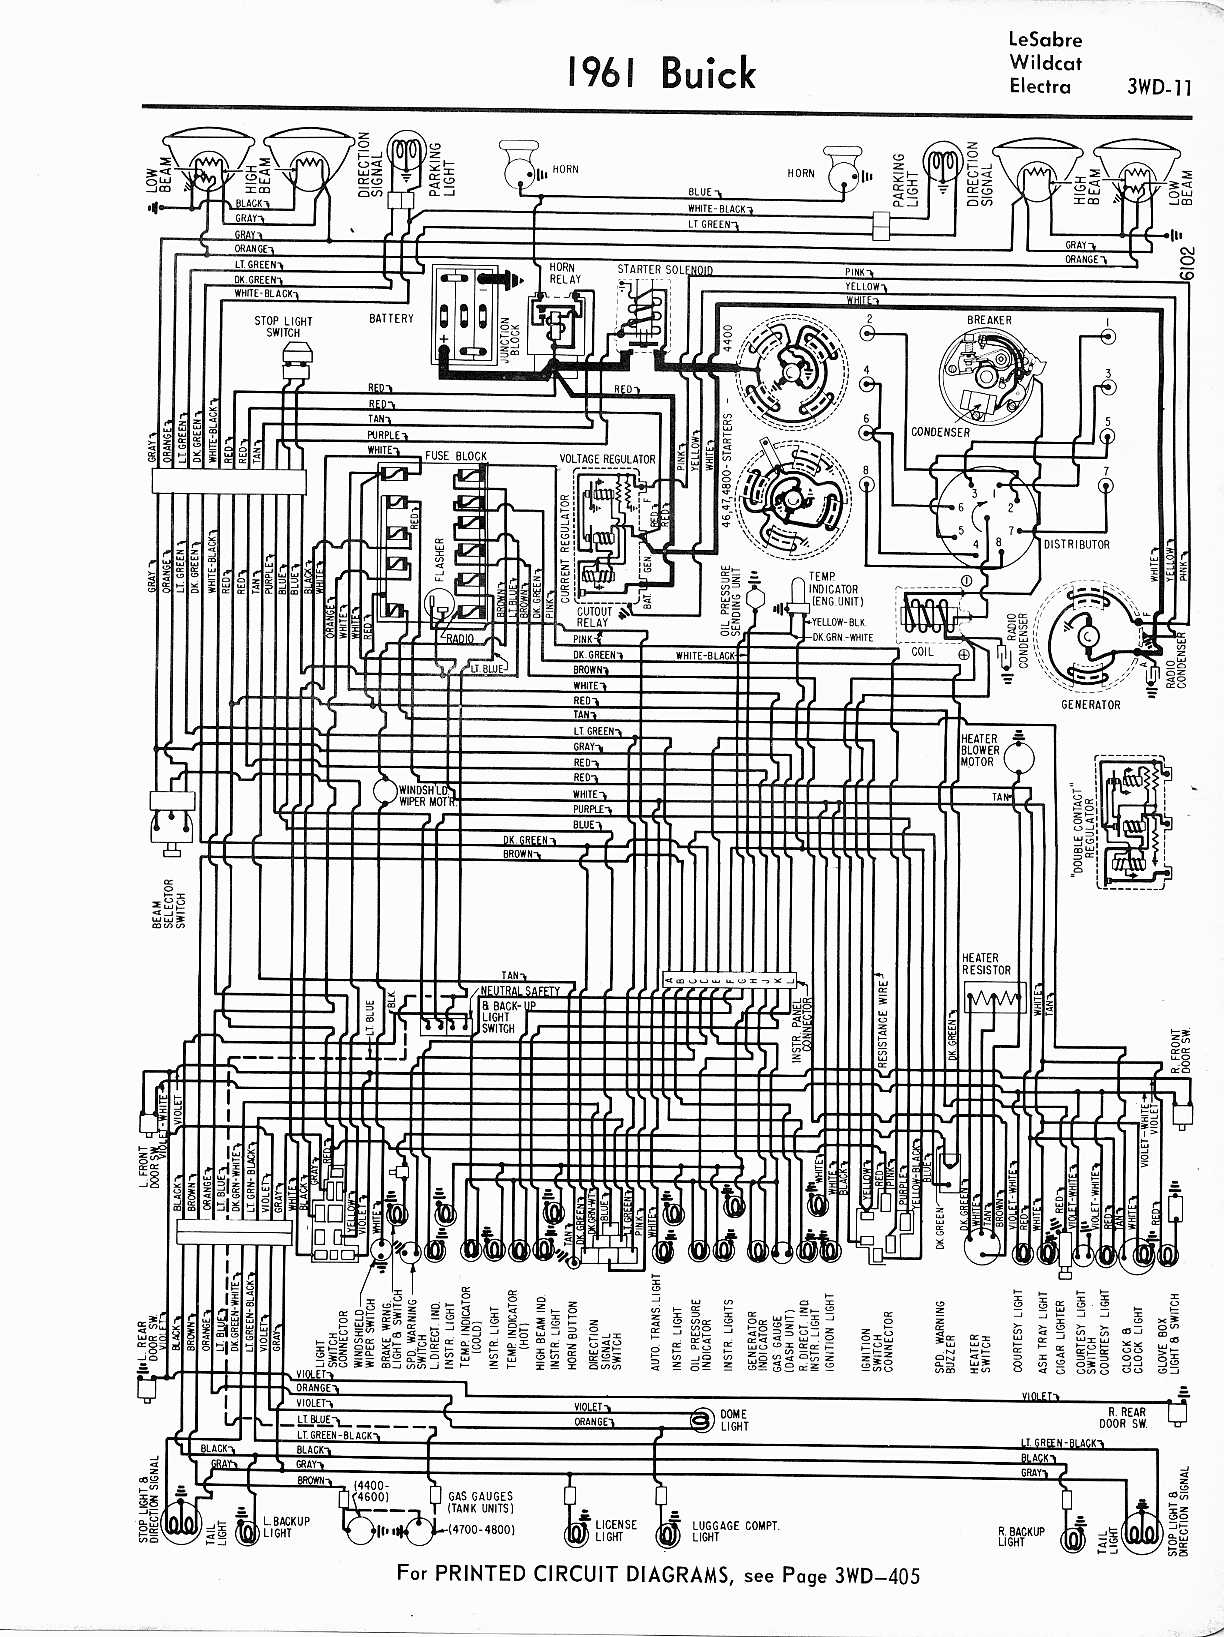 wiring diagram for buick lesabre wiring diagram completed 95 Buick LeSabre Battery